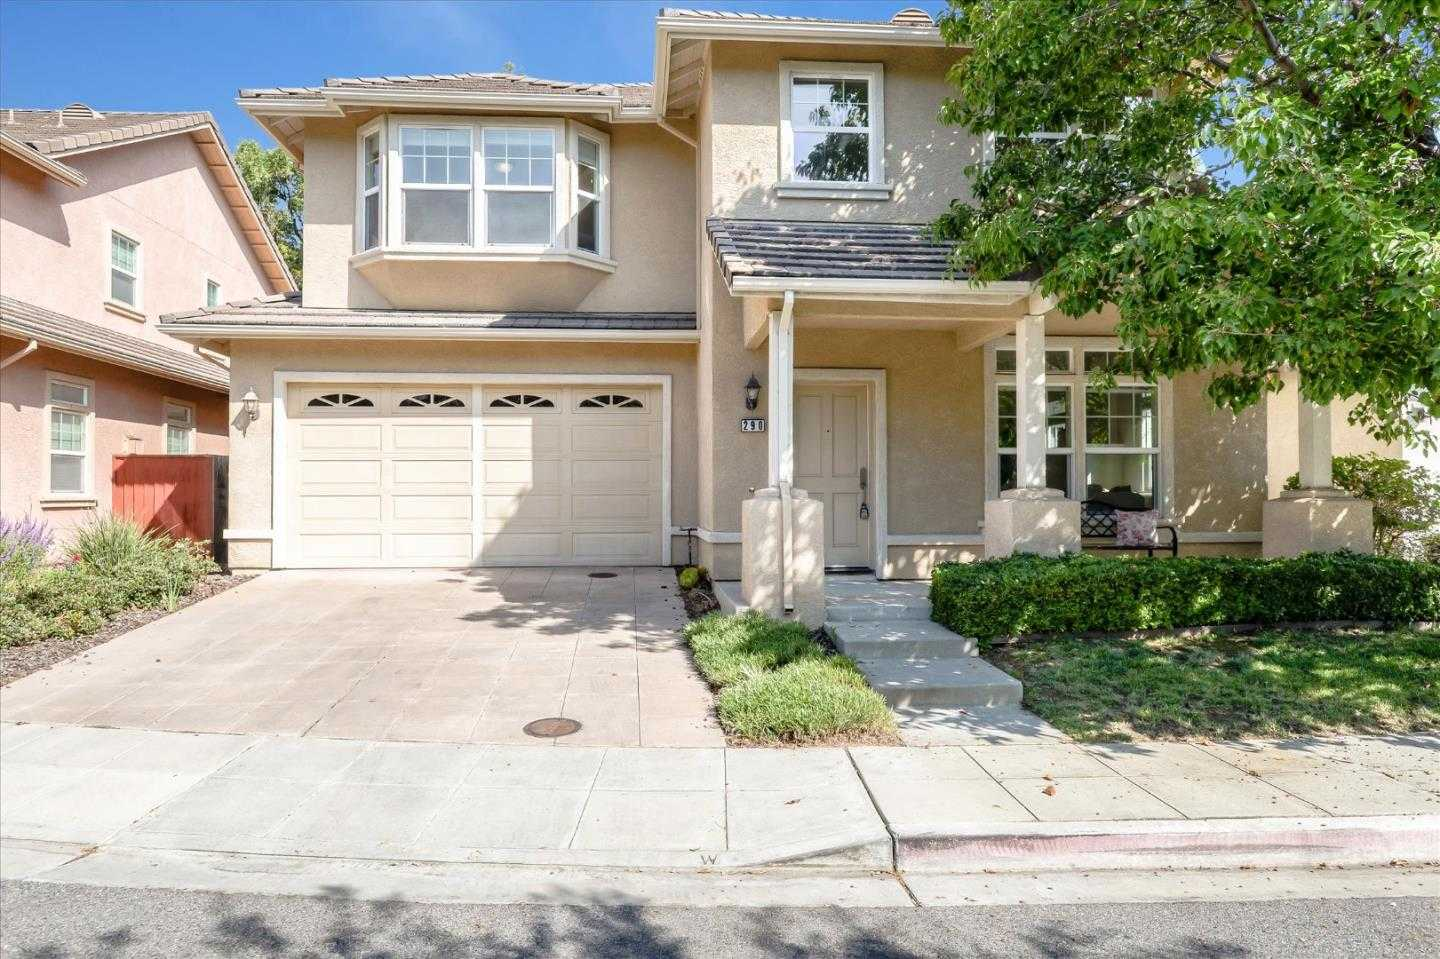 $2,090,000 - 4Br/3Ba -  for Sale in Mountain View